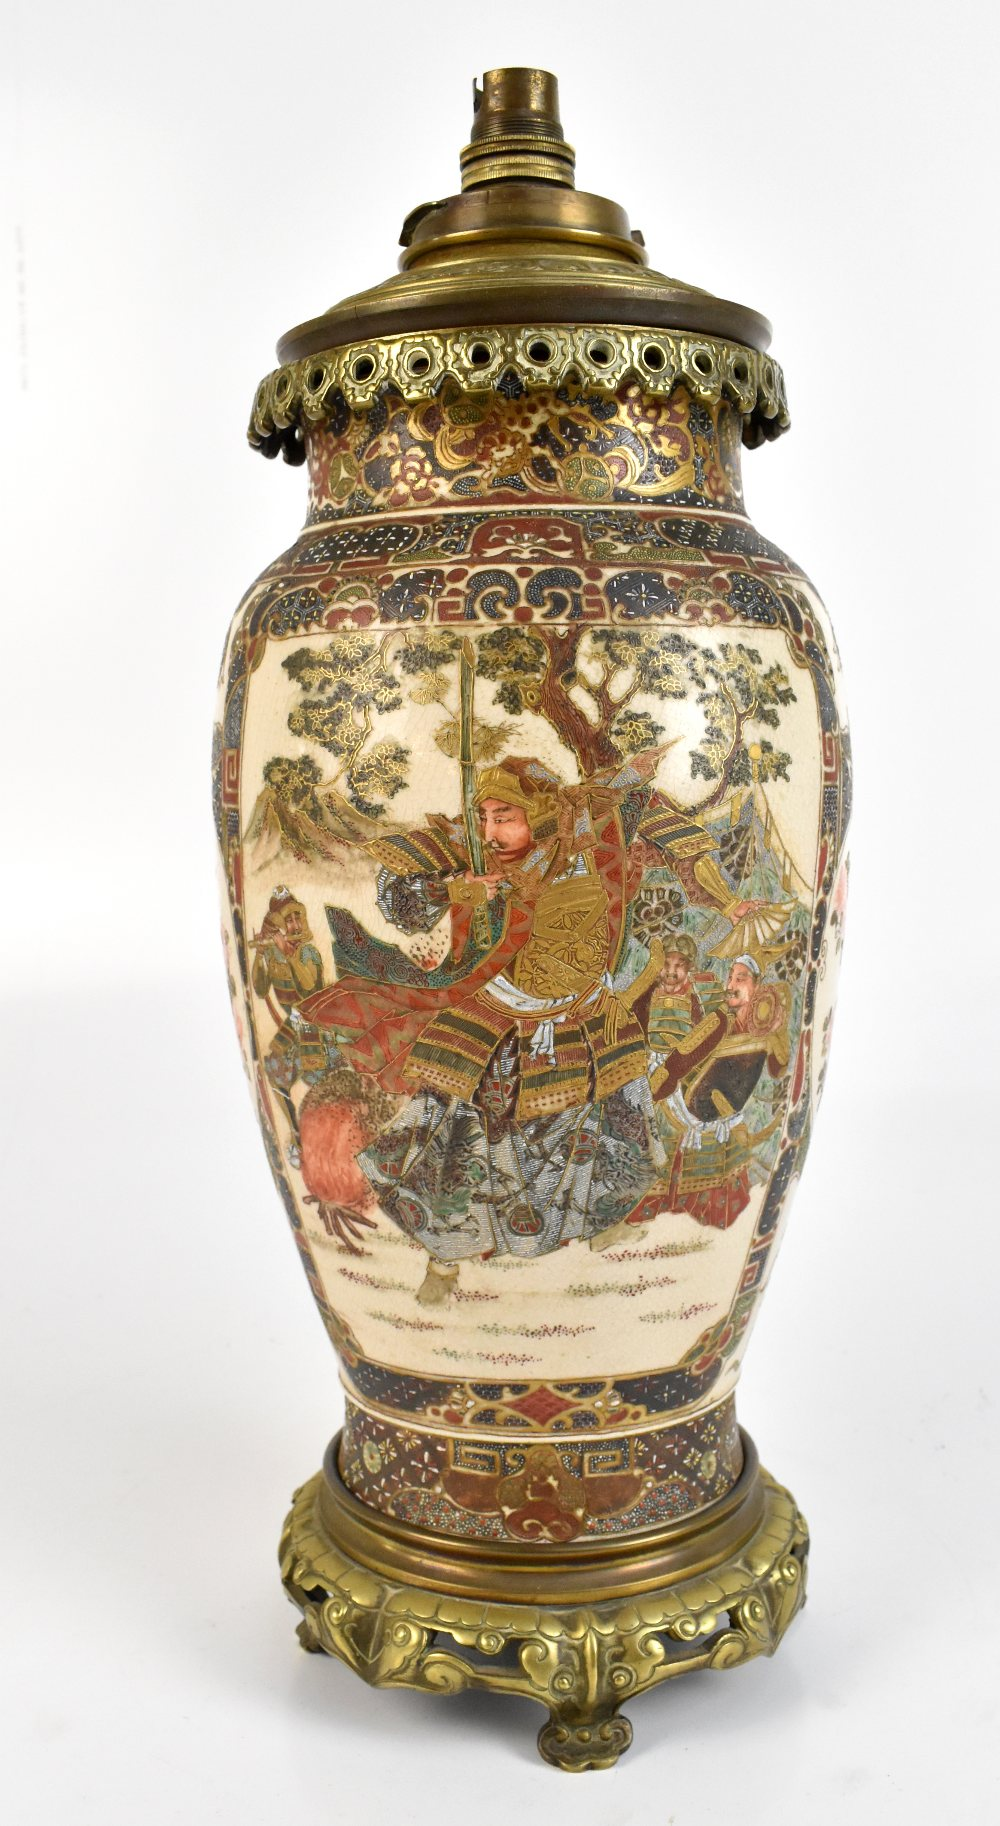 An early 20th century Japanese Satsuma oil lamp with brass mount, painted with birds and flowers, - Image 2 of 2